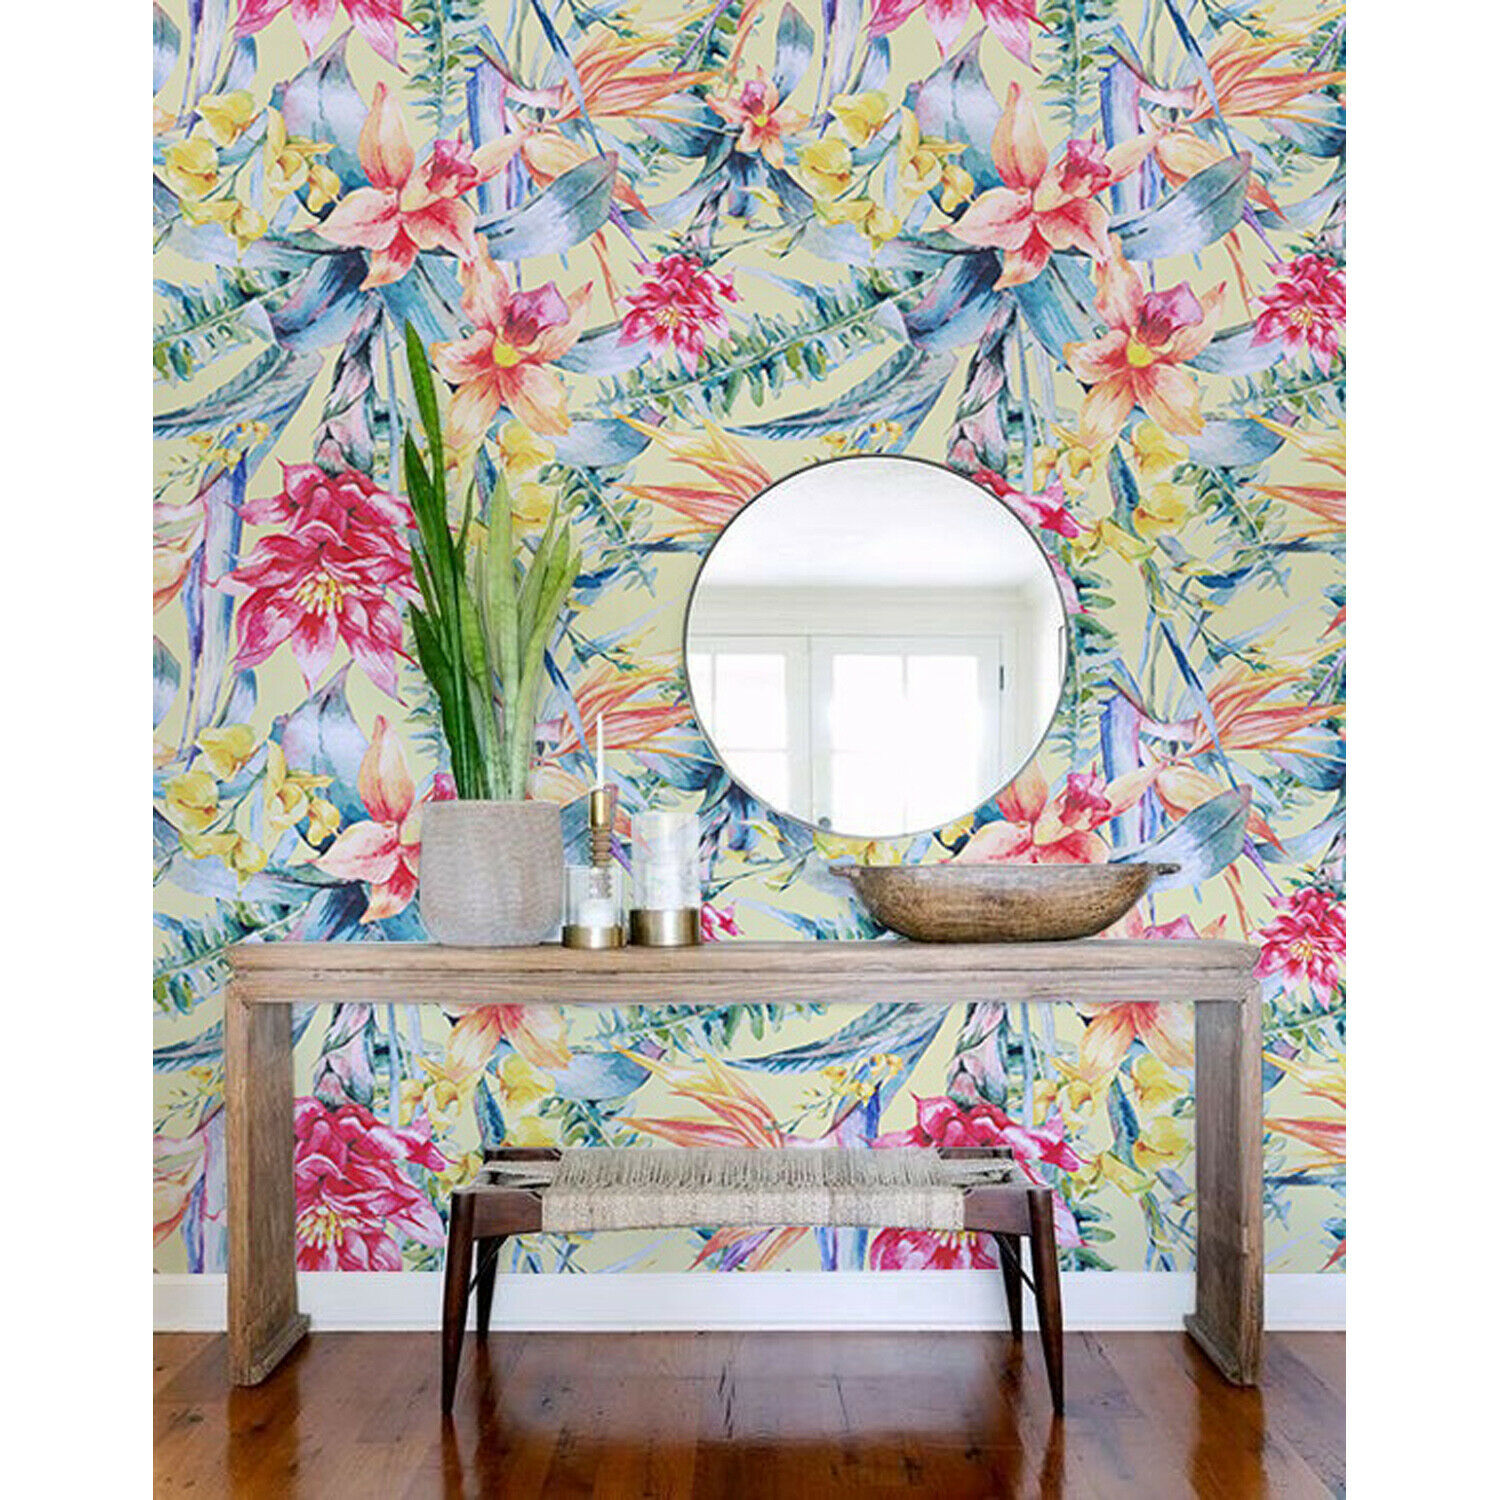 Removable wallpaper Tropical Flowers Self adhesive Tropical Floral Wall Mural